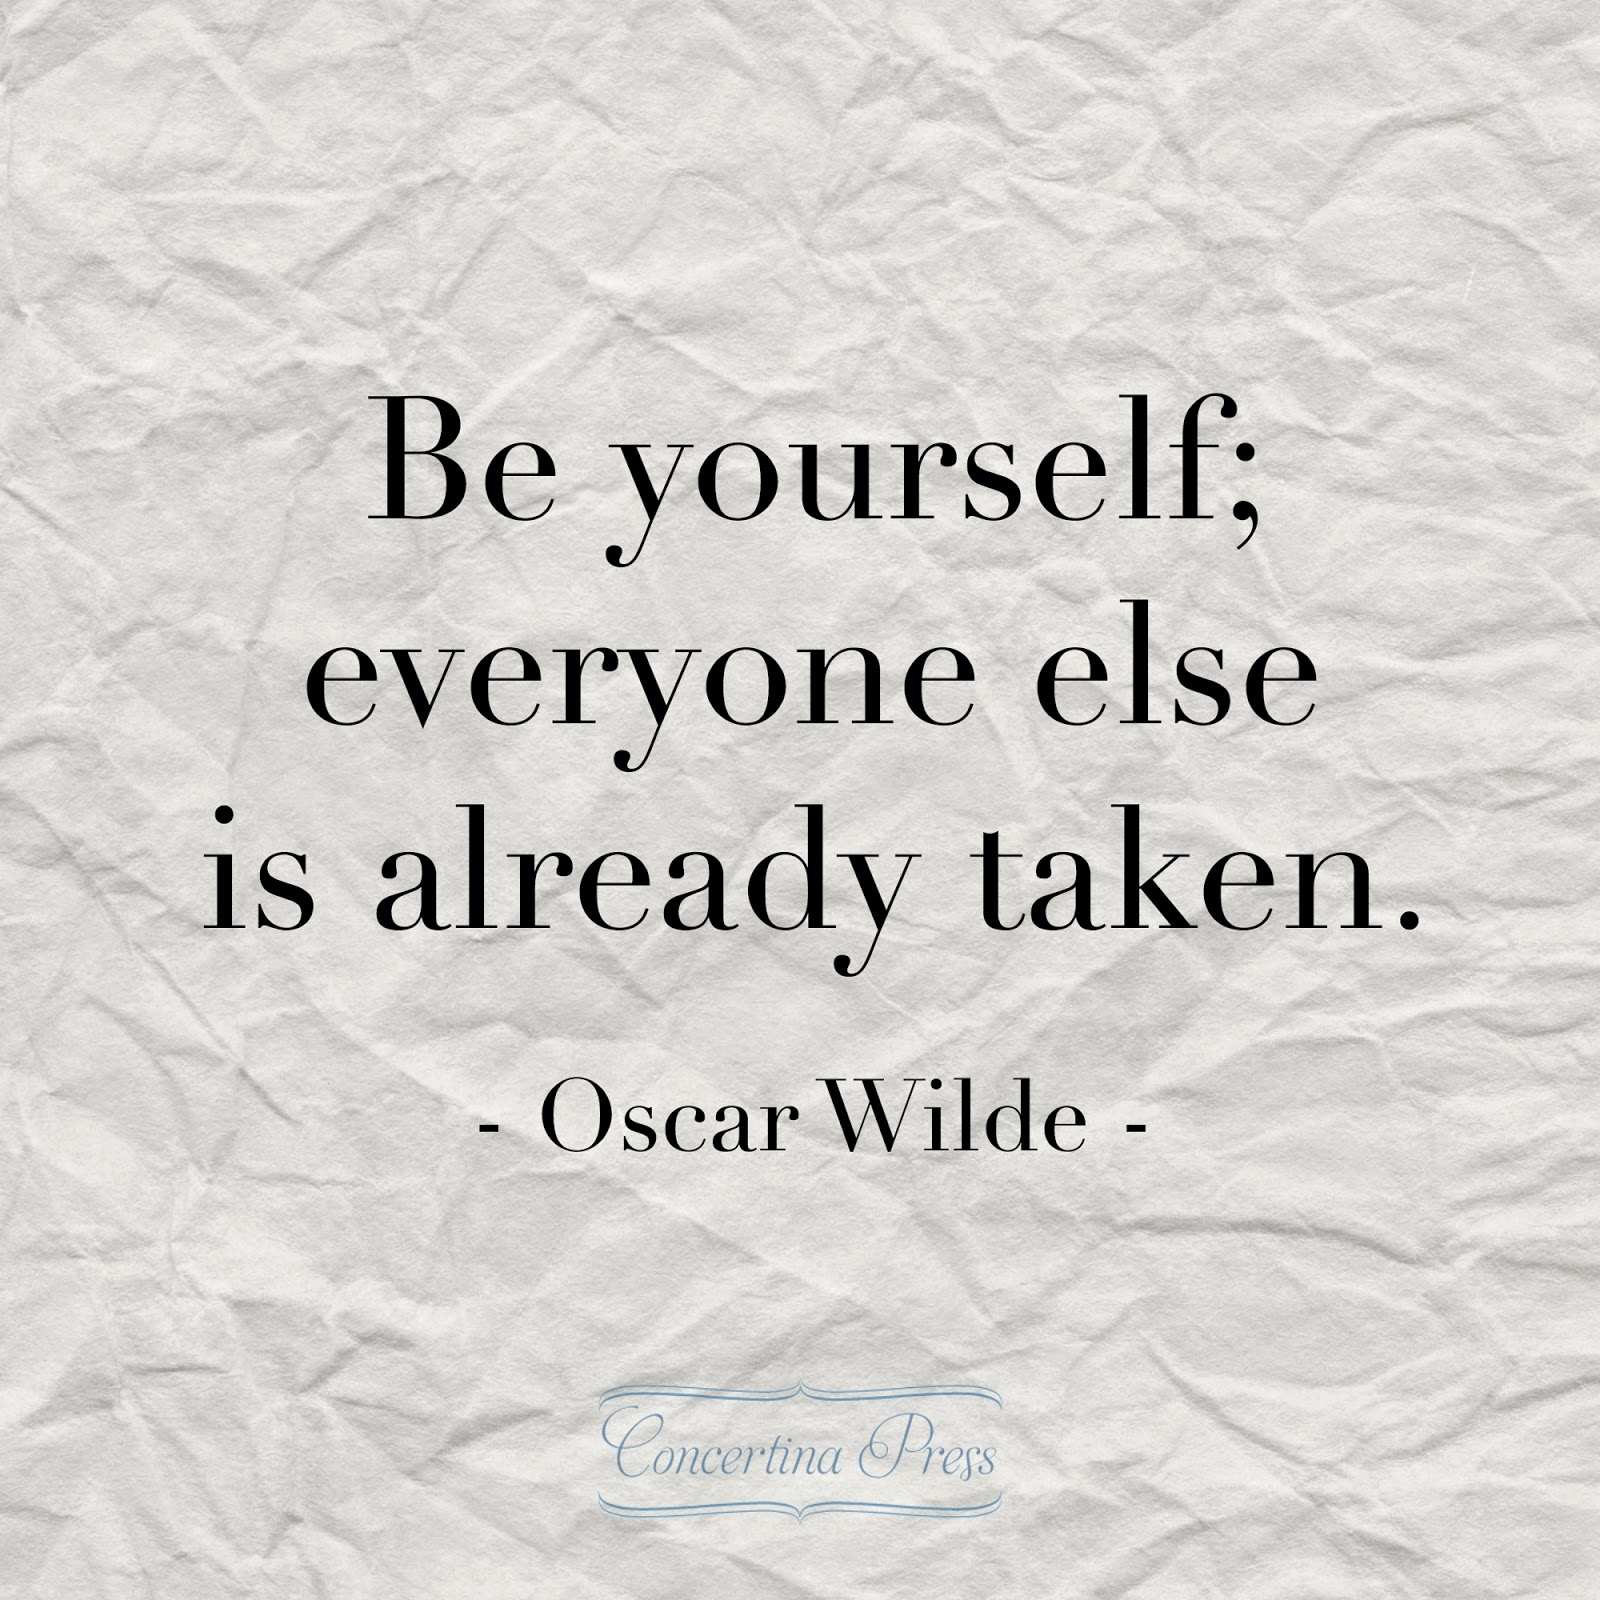 Quotes About Being Yourself: Stationery And Invitations: Oscar Wilde